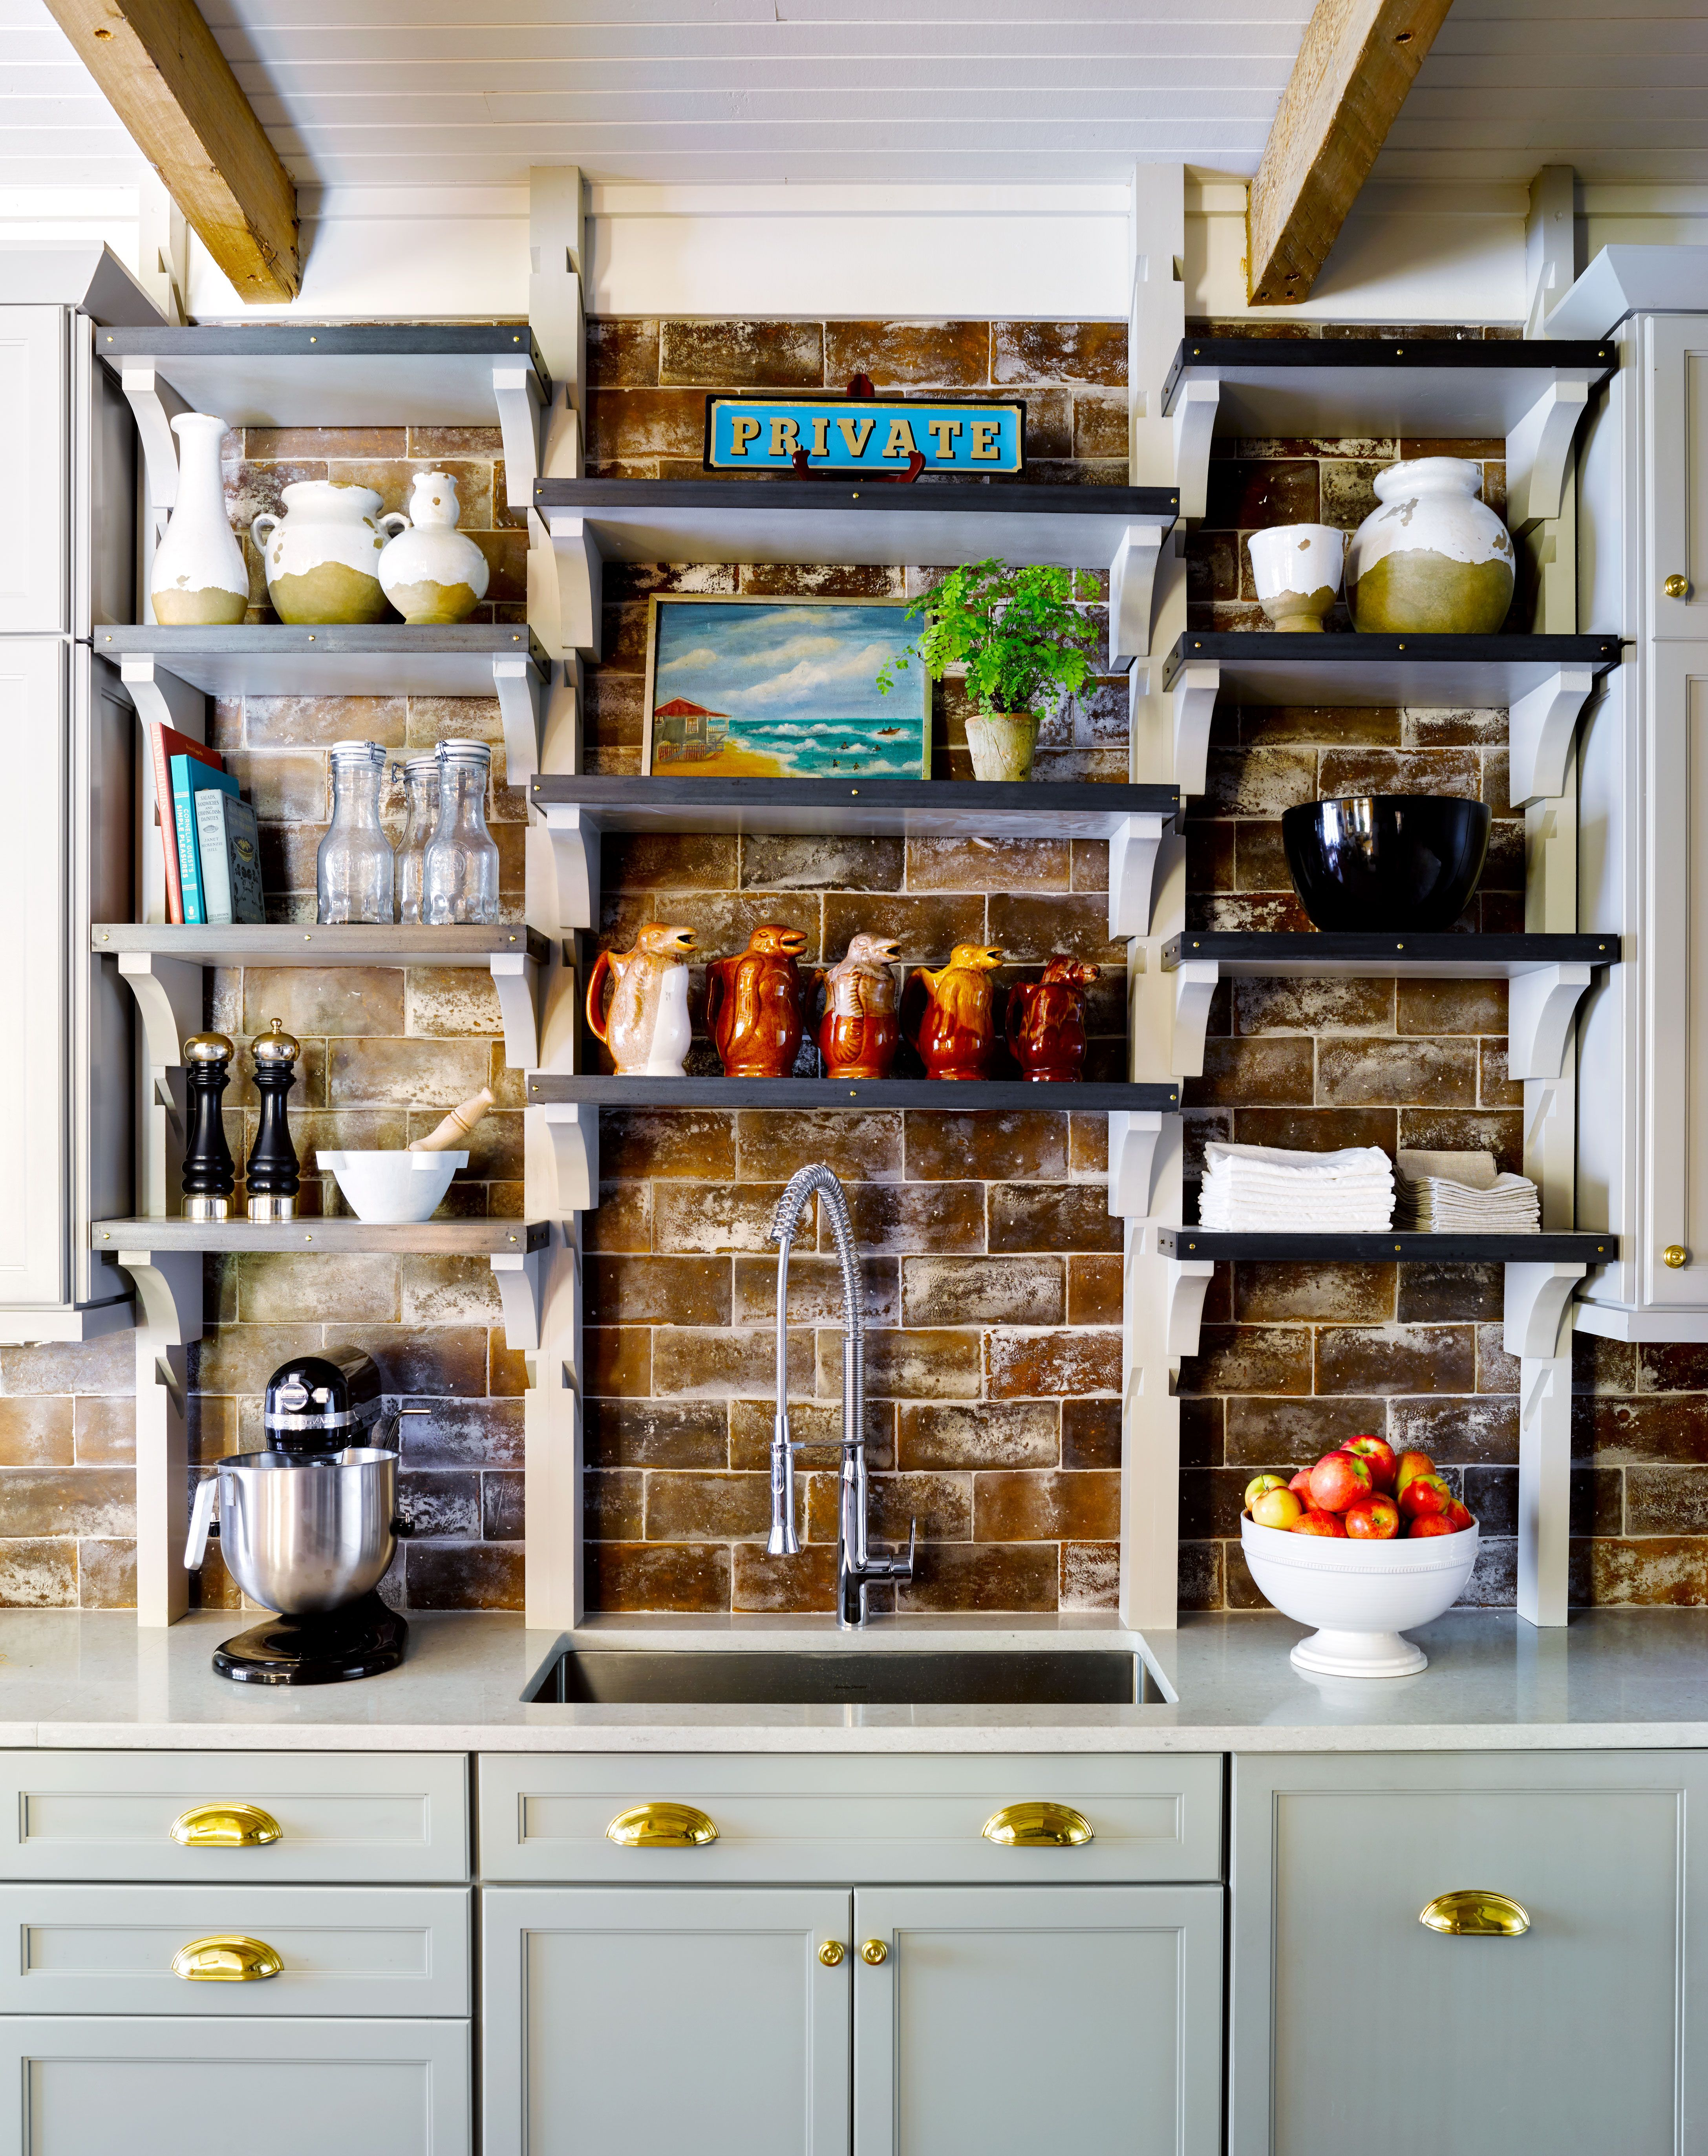 20 Stylish Pantry Ideas - Best Ways to Design a Kitchen Pantry